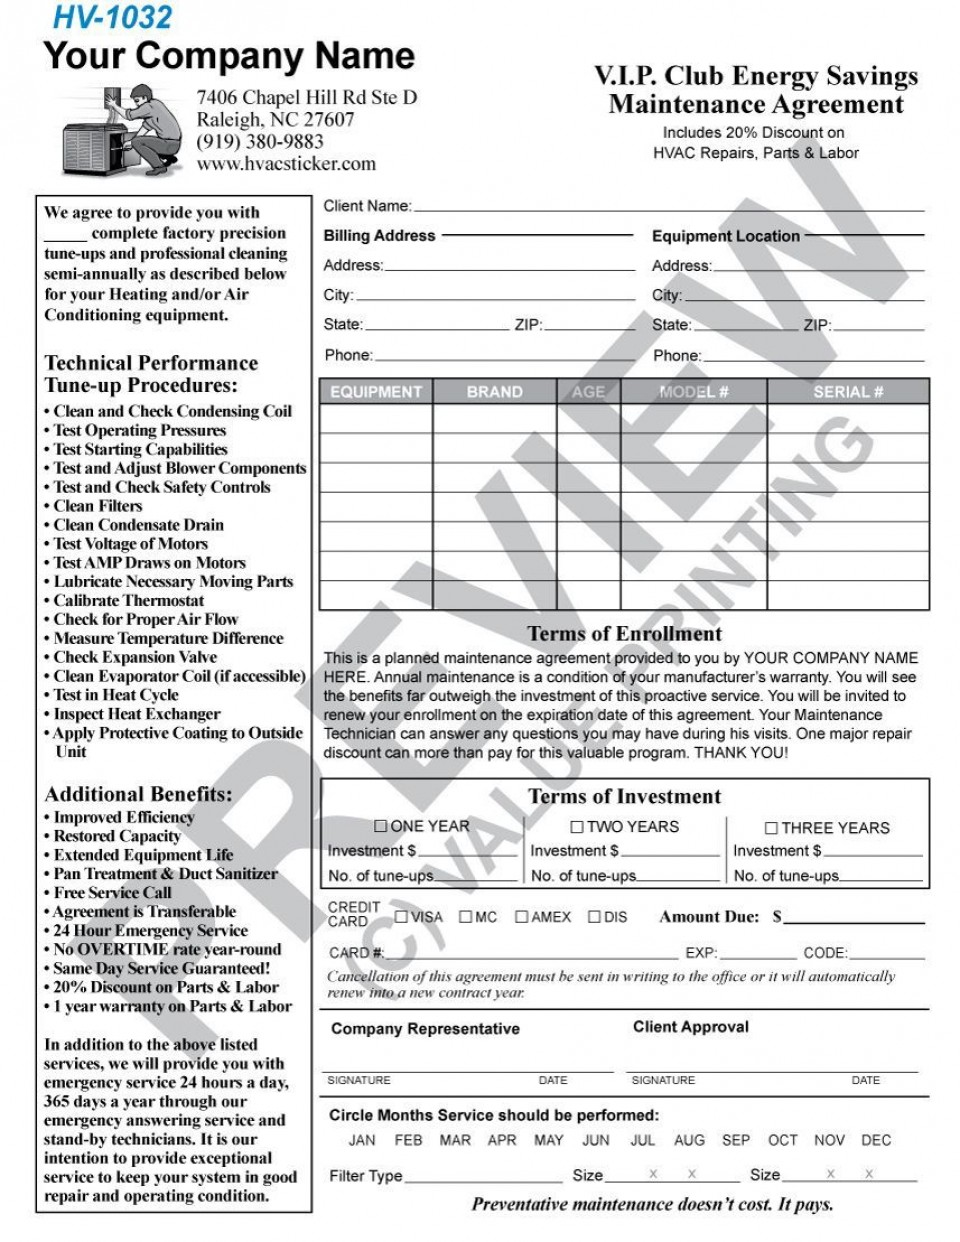 004 Incredible Commercial Hvac Service Agreement Template Picture  Maintenance Contract960